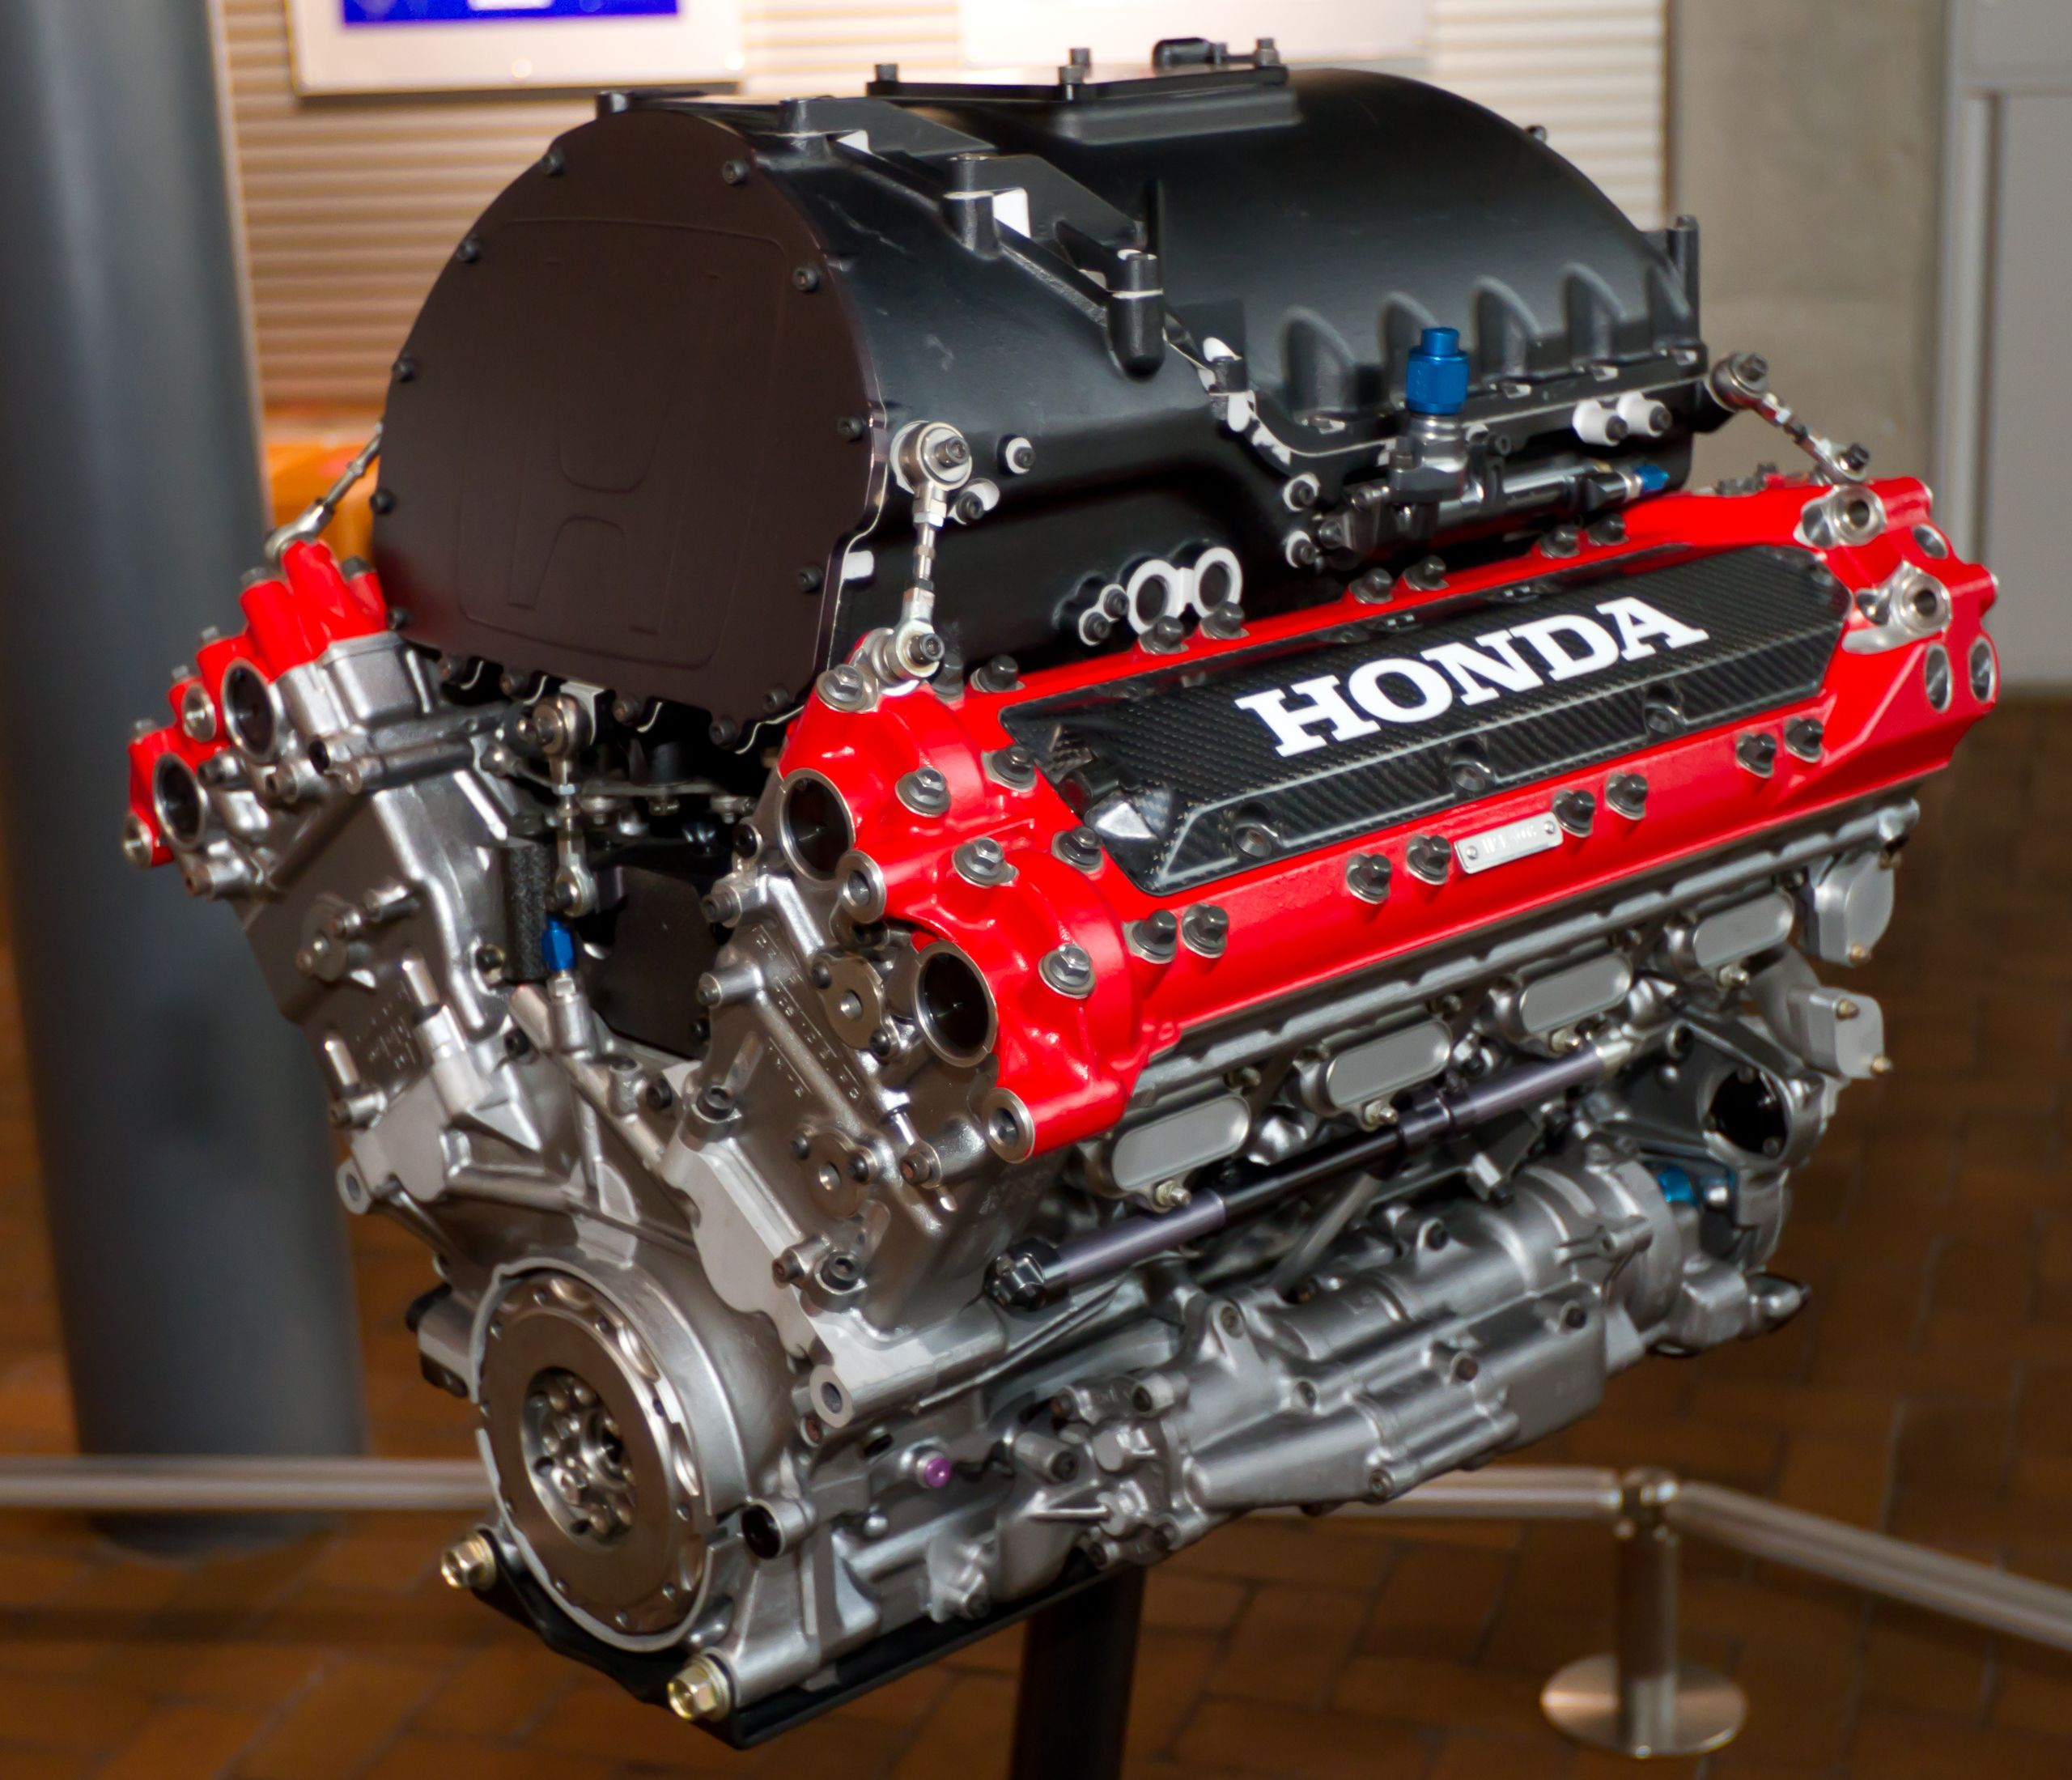 Honda Car Engines: #SouthwestEngines Check Out The Most Powerful Honda